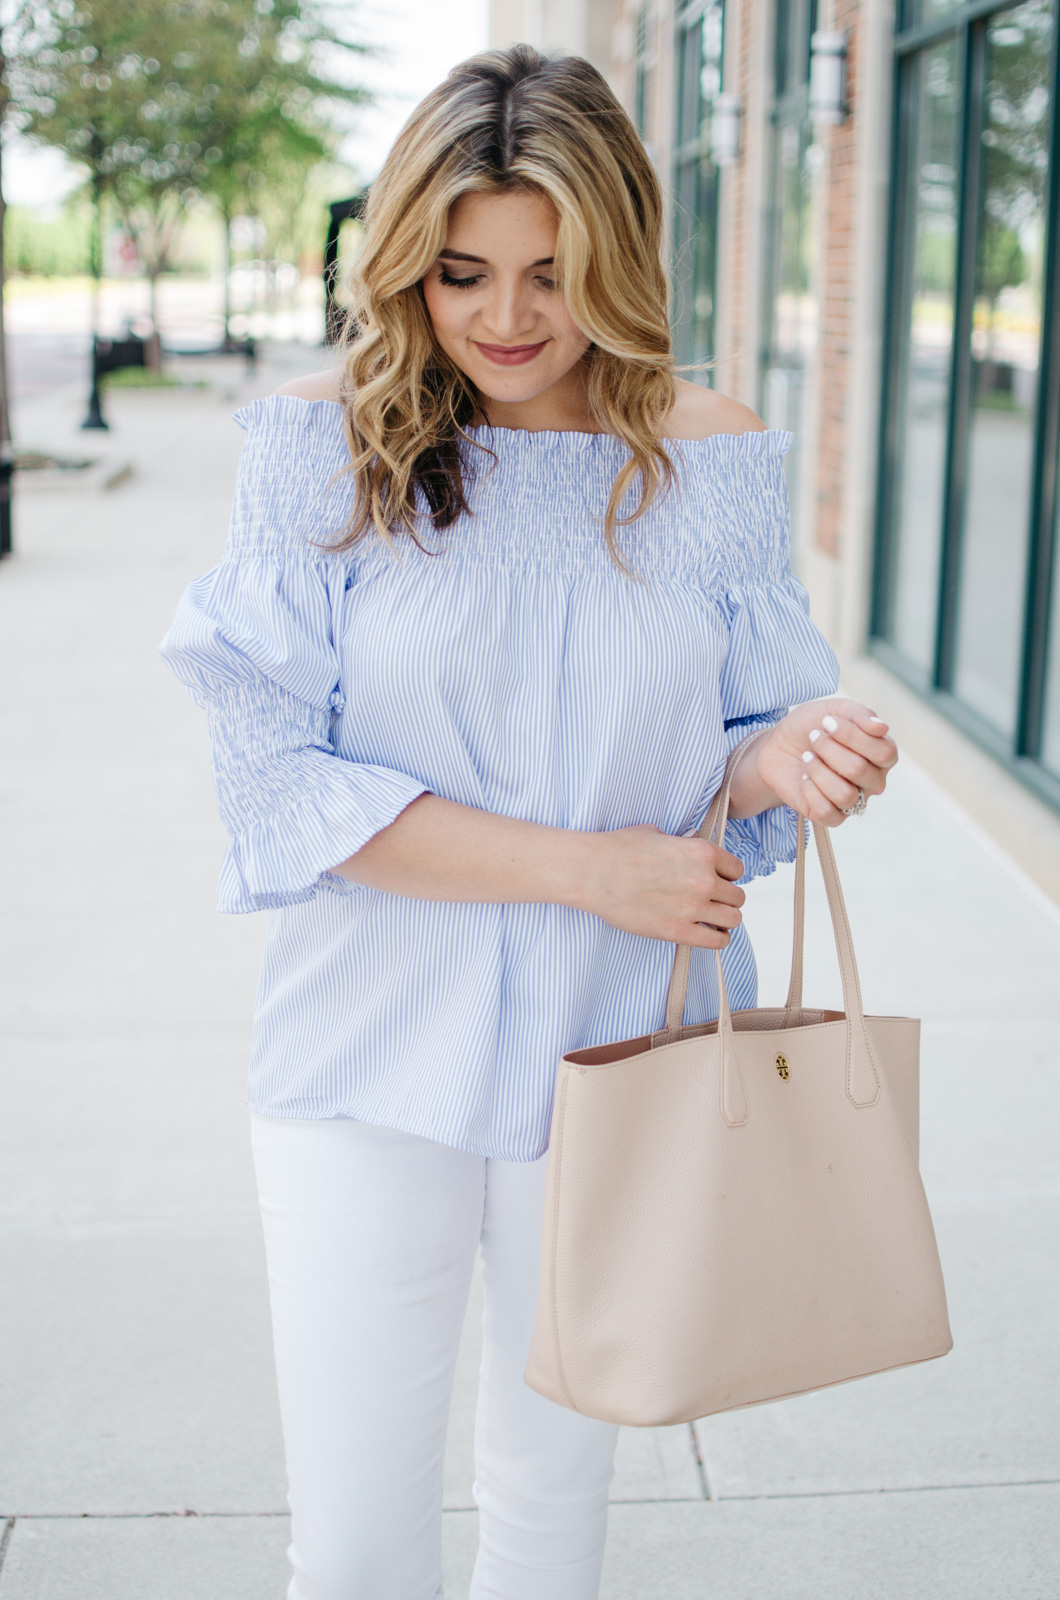 spring outfit - cute spring style | Want more Spring outfit inspiration? Head to bylaurenm.com!